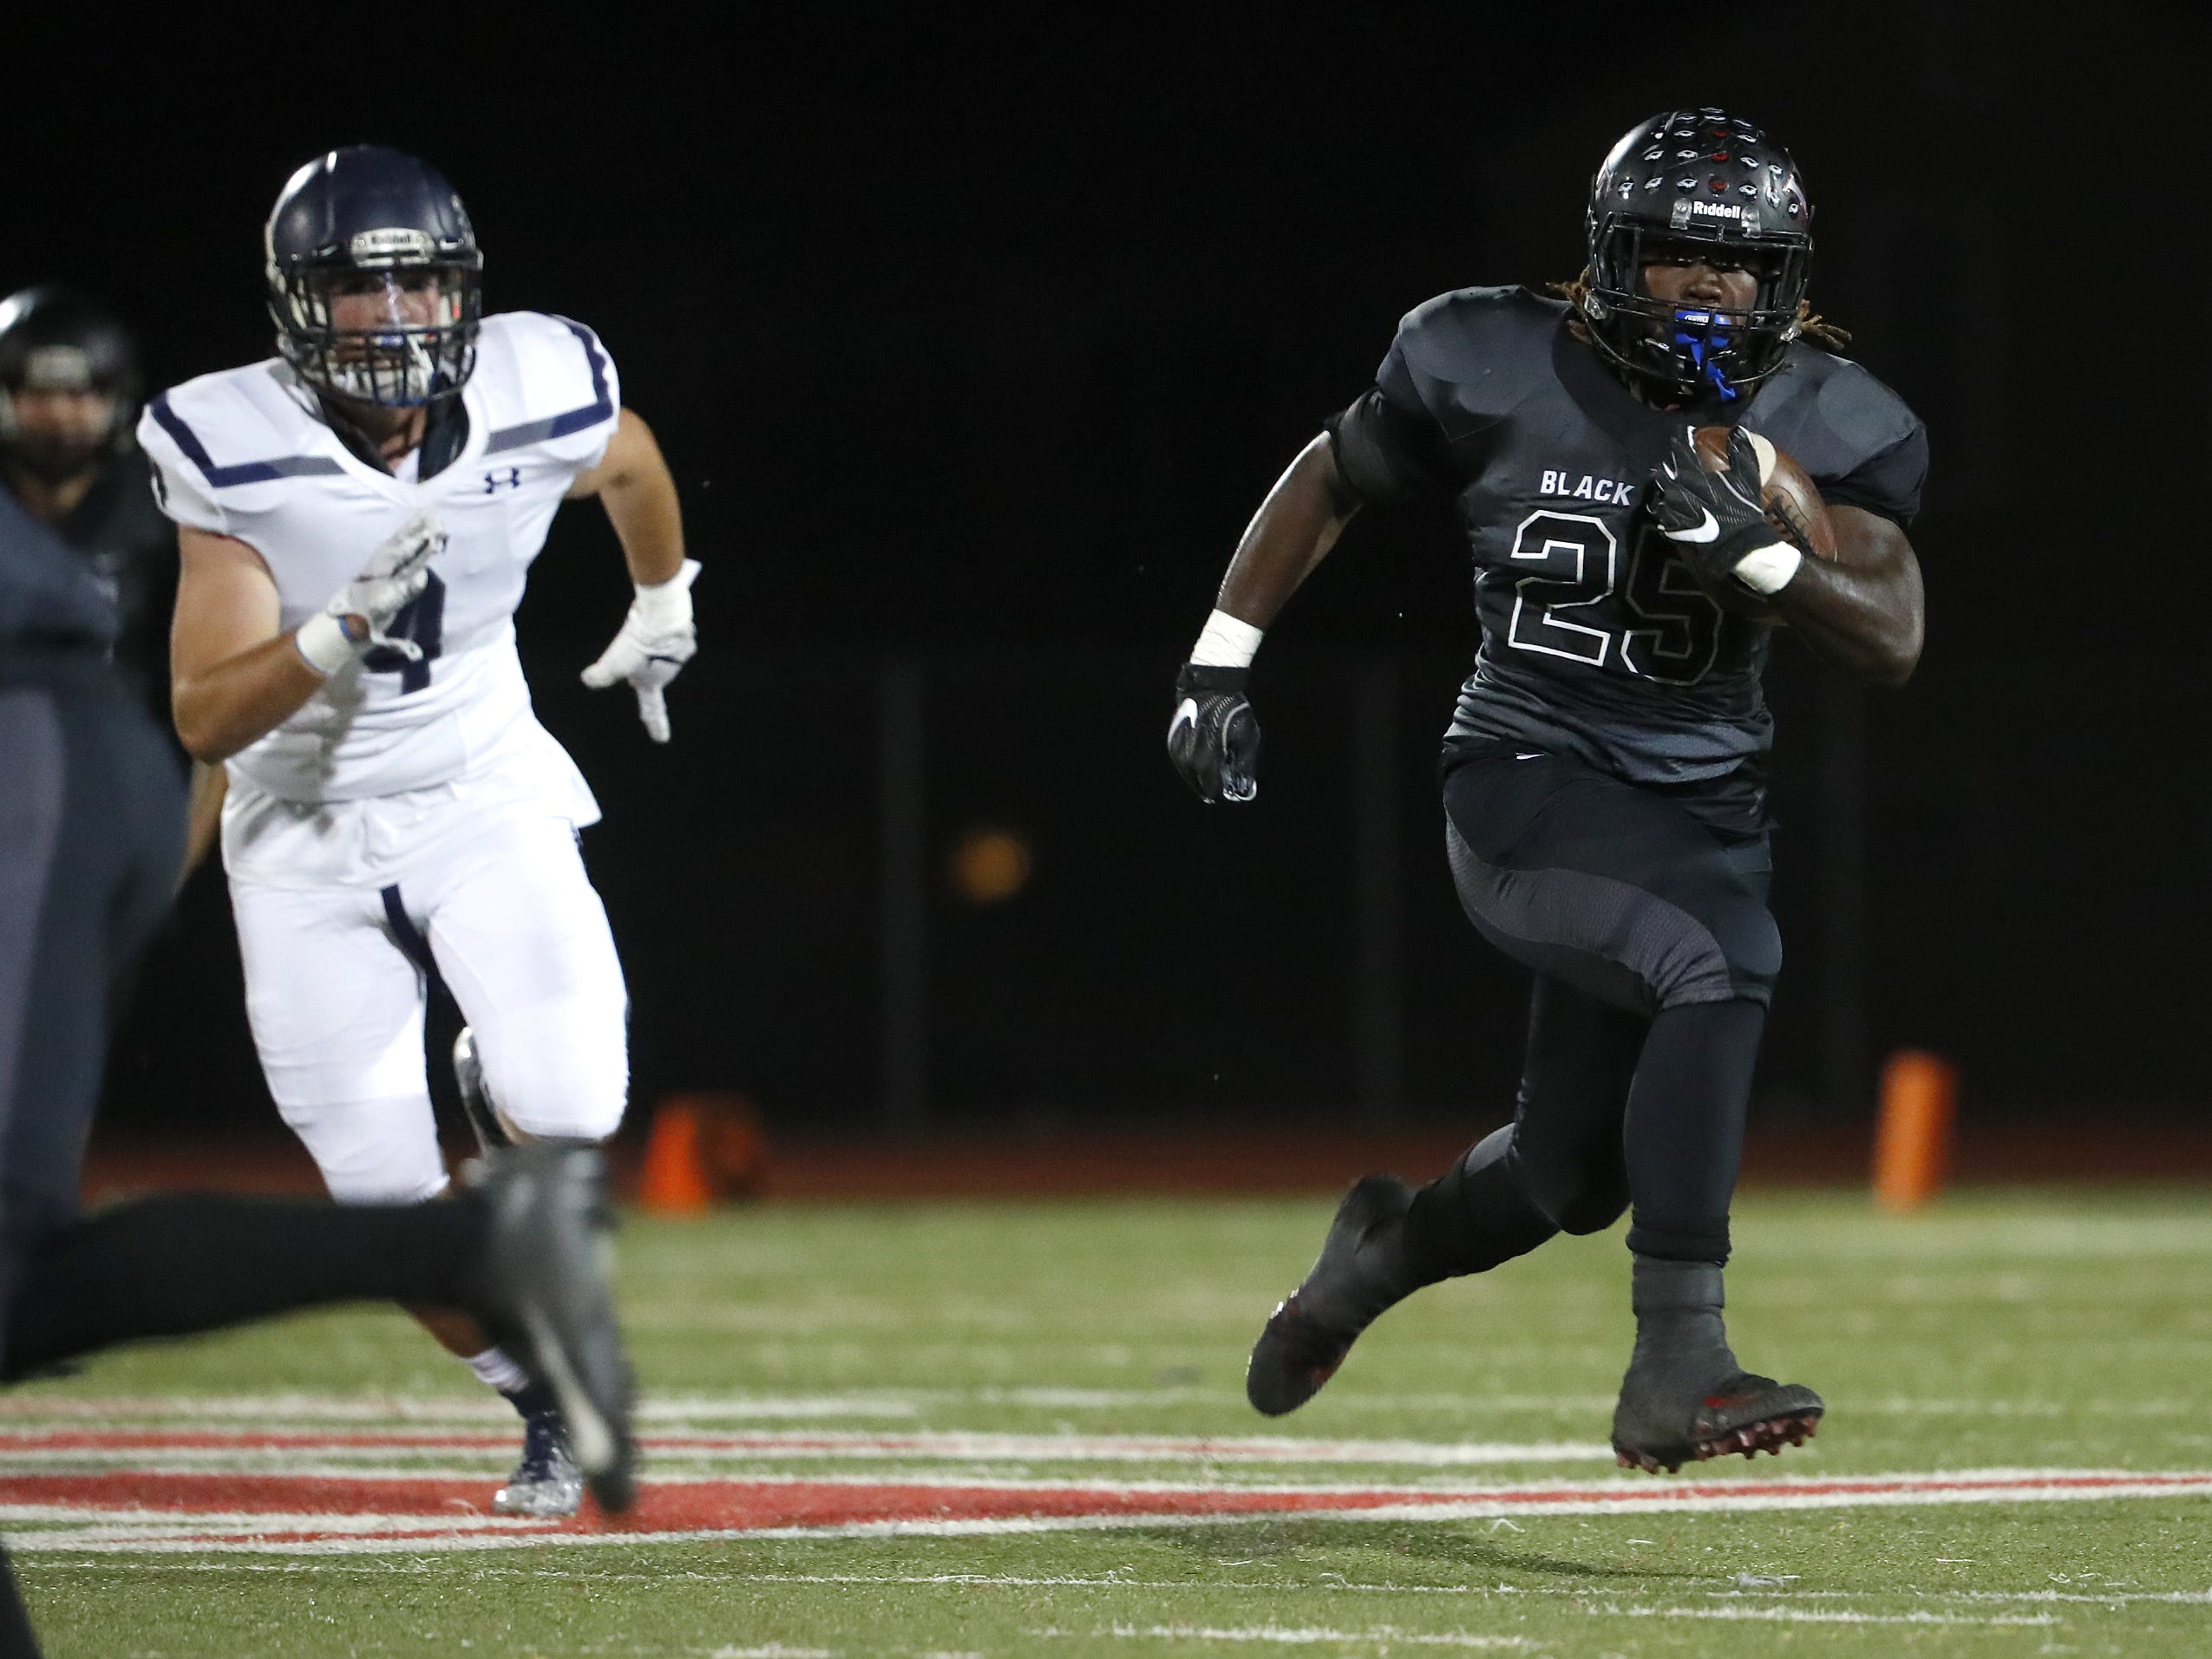 Williams Field's Jaden Thompson (25) runs past Higley's Connor Mills (4) during the first half at Williams Field High School in Gilbert, Ariz. on October 26, 2018.